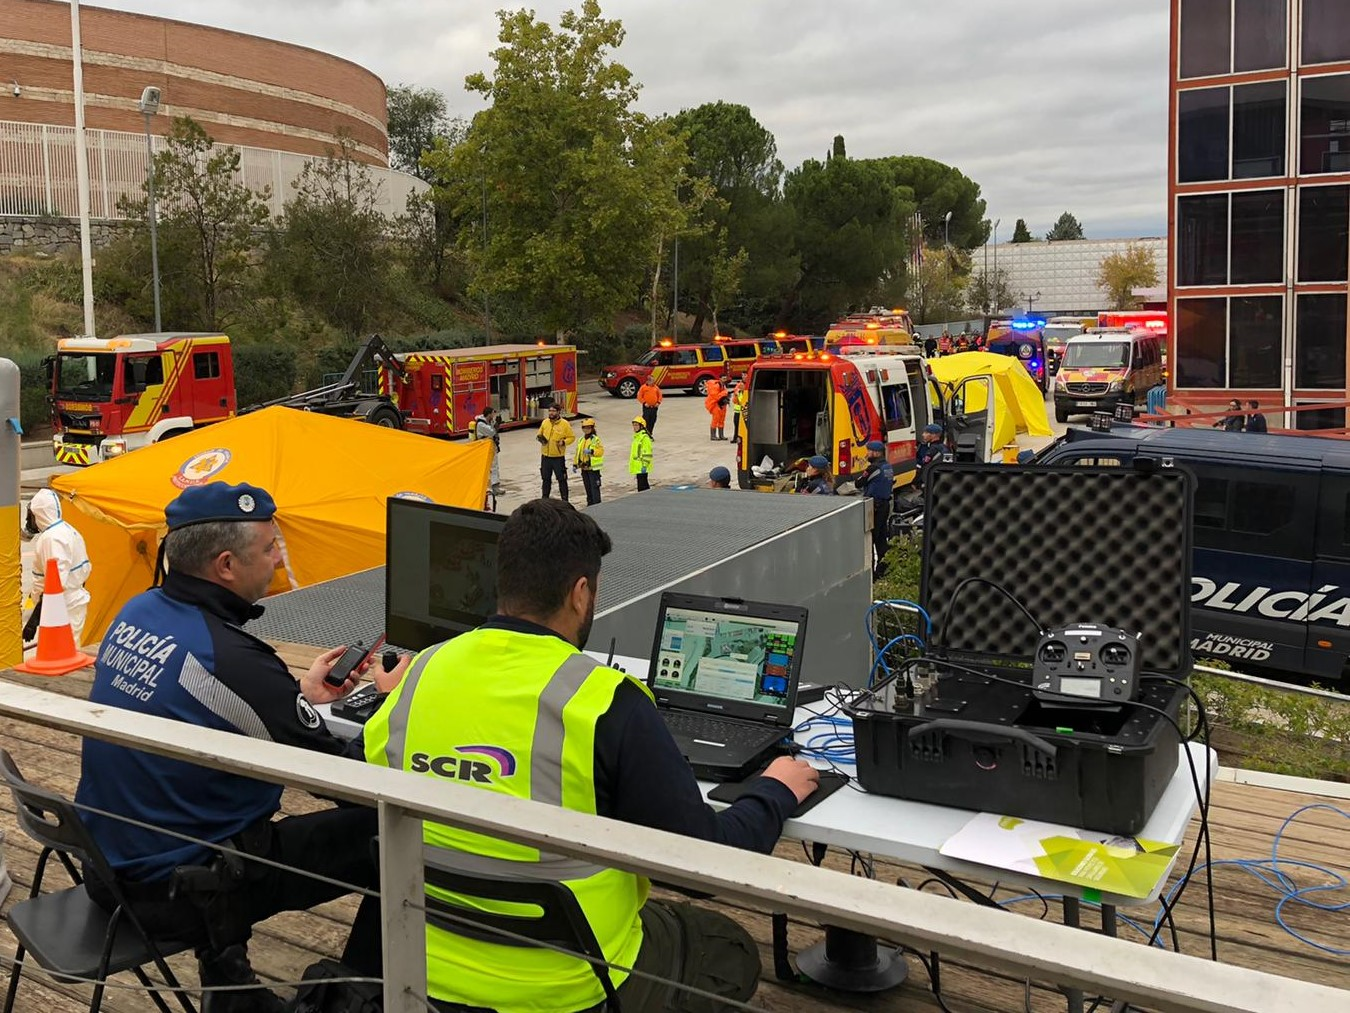 madrid-municipal-police-tethered-drone-aster-t-in-emergency-drill